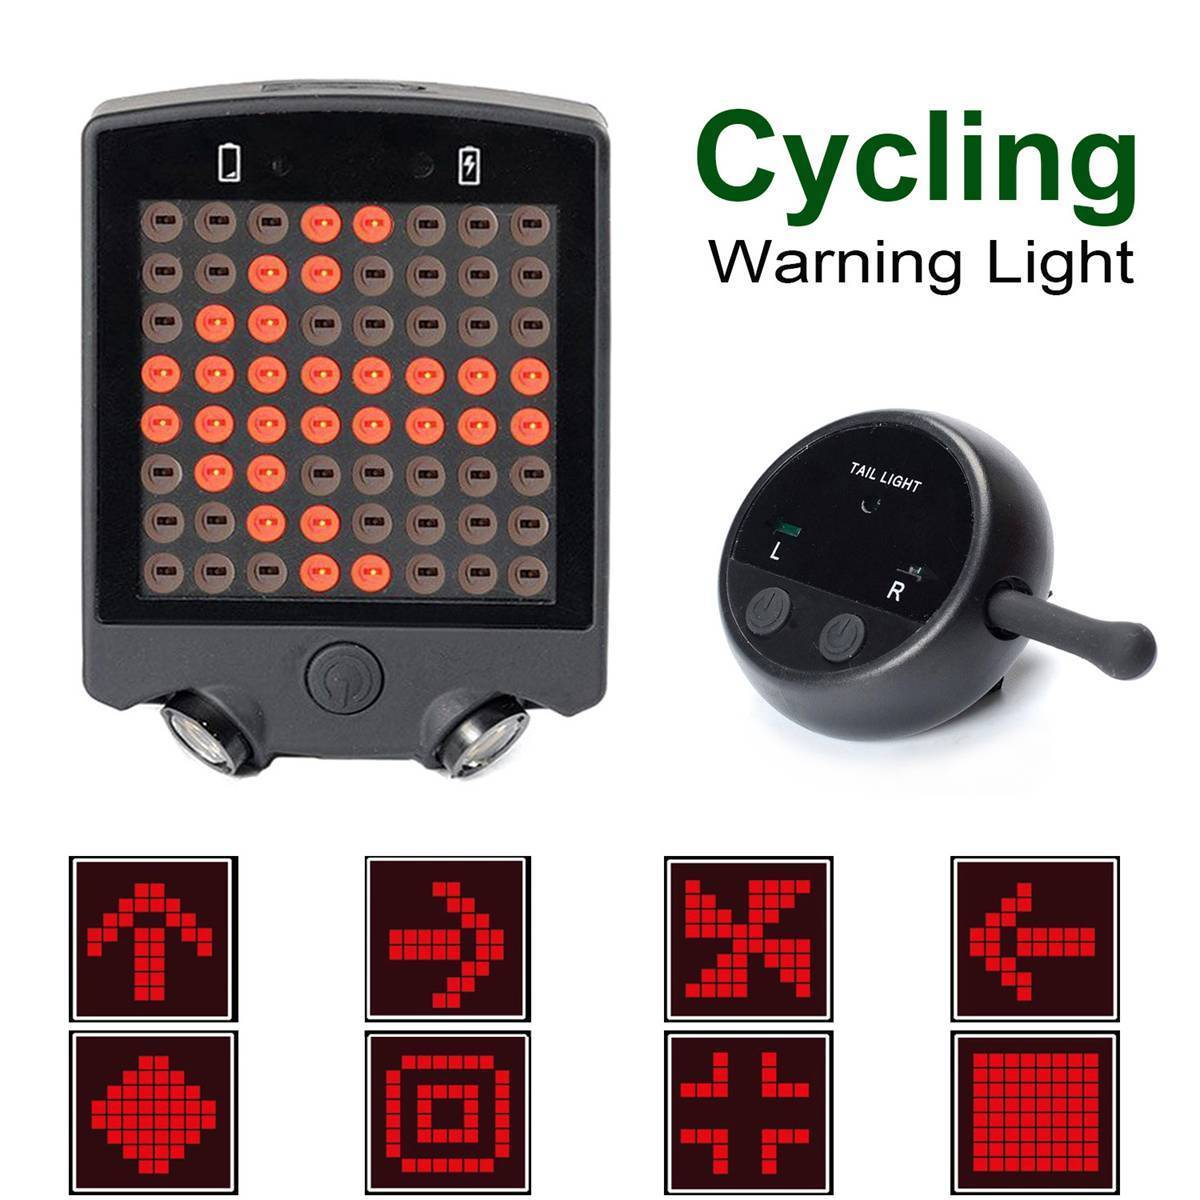 64 LED Laser Bicycle Rear Tail Light Bike Turn Signals Safety Warning Light bicycle light remote wireless laser USB Rechargeable meilan x5 wireless bike bicycle rear light laser tail lamp smart usb rechargeable cycling accessories remote turn led